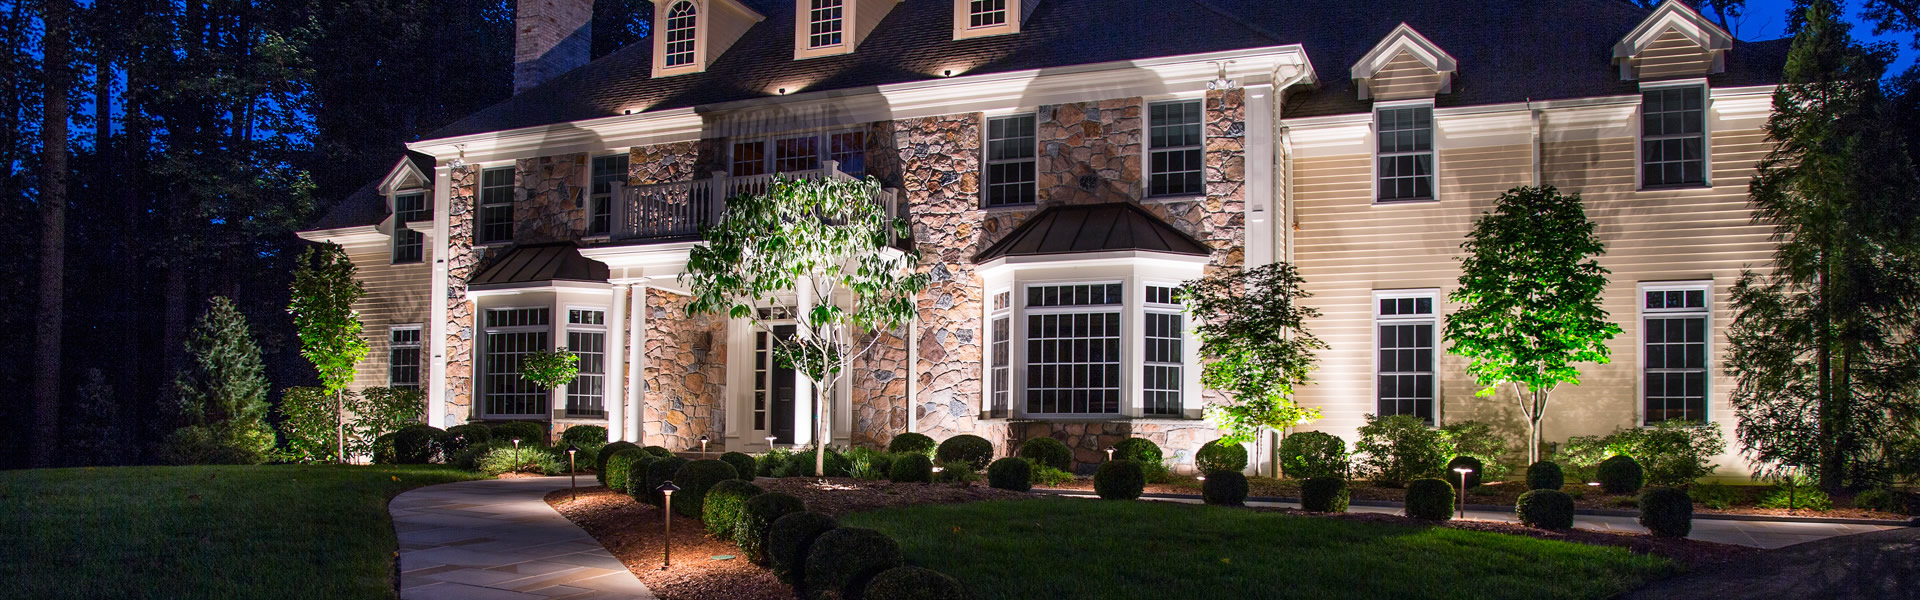 Landscape Lighting Low Voltage Lakeland Landscaping